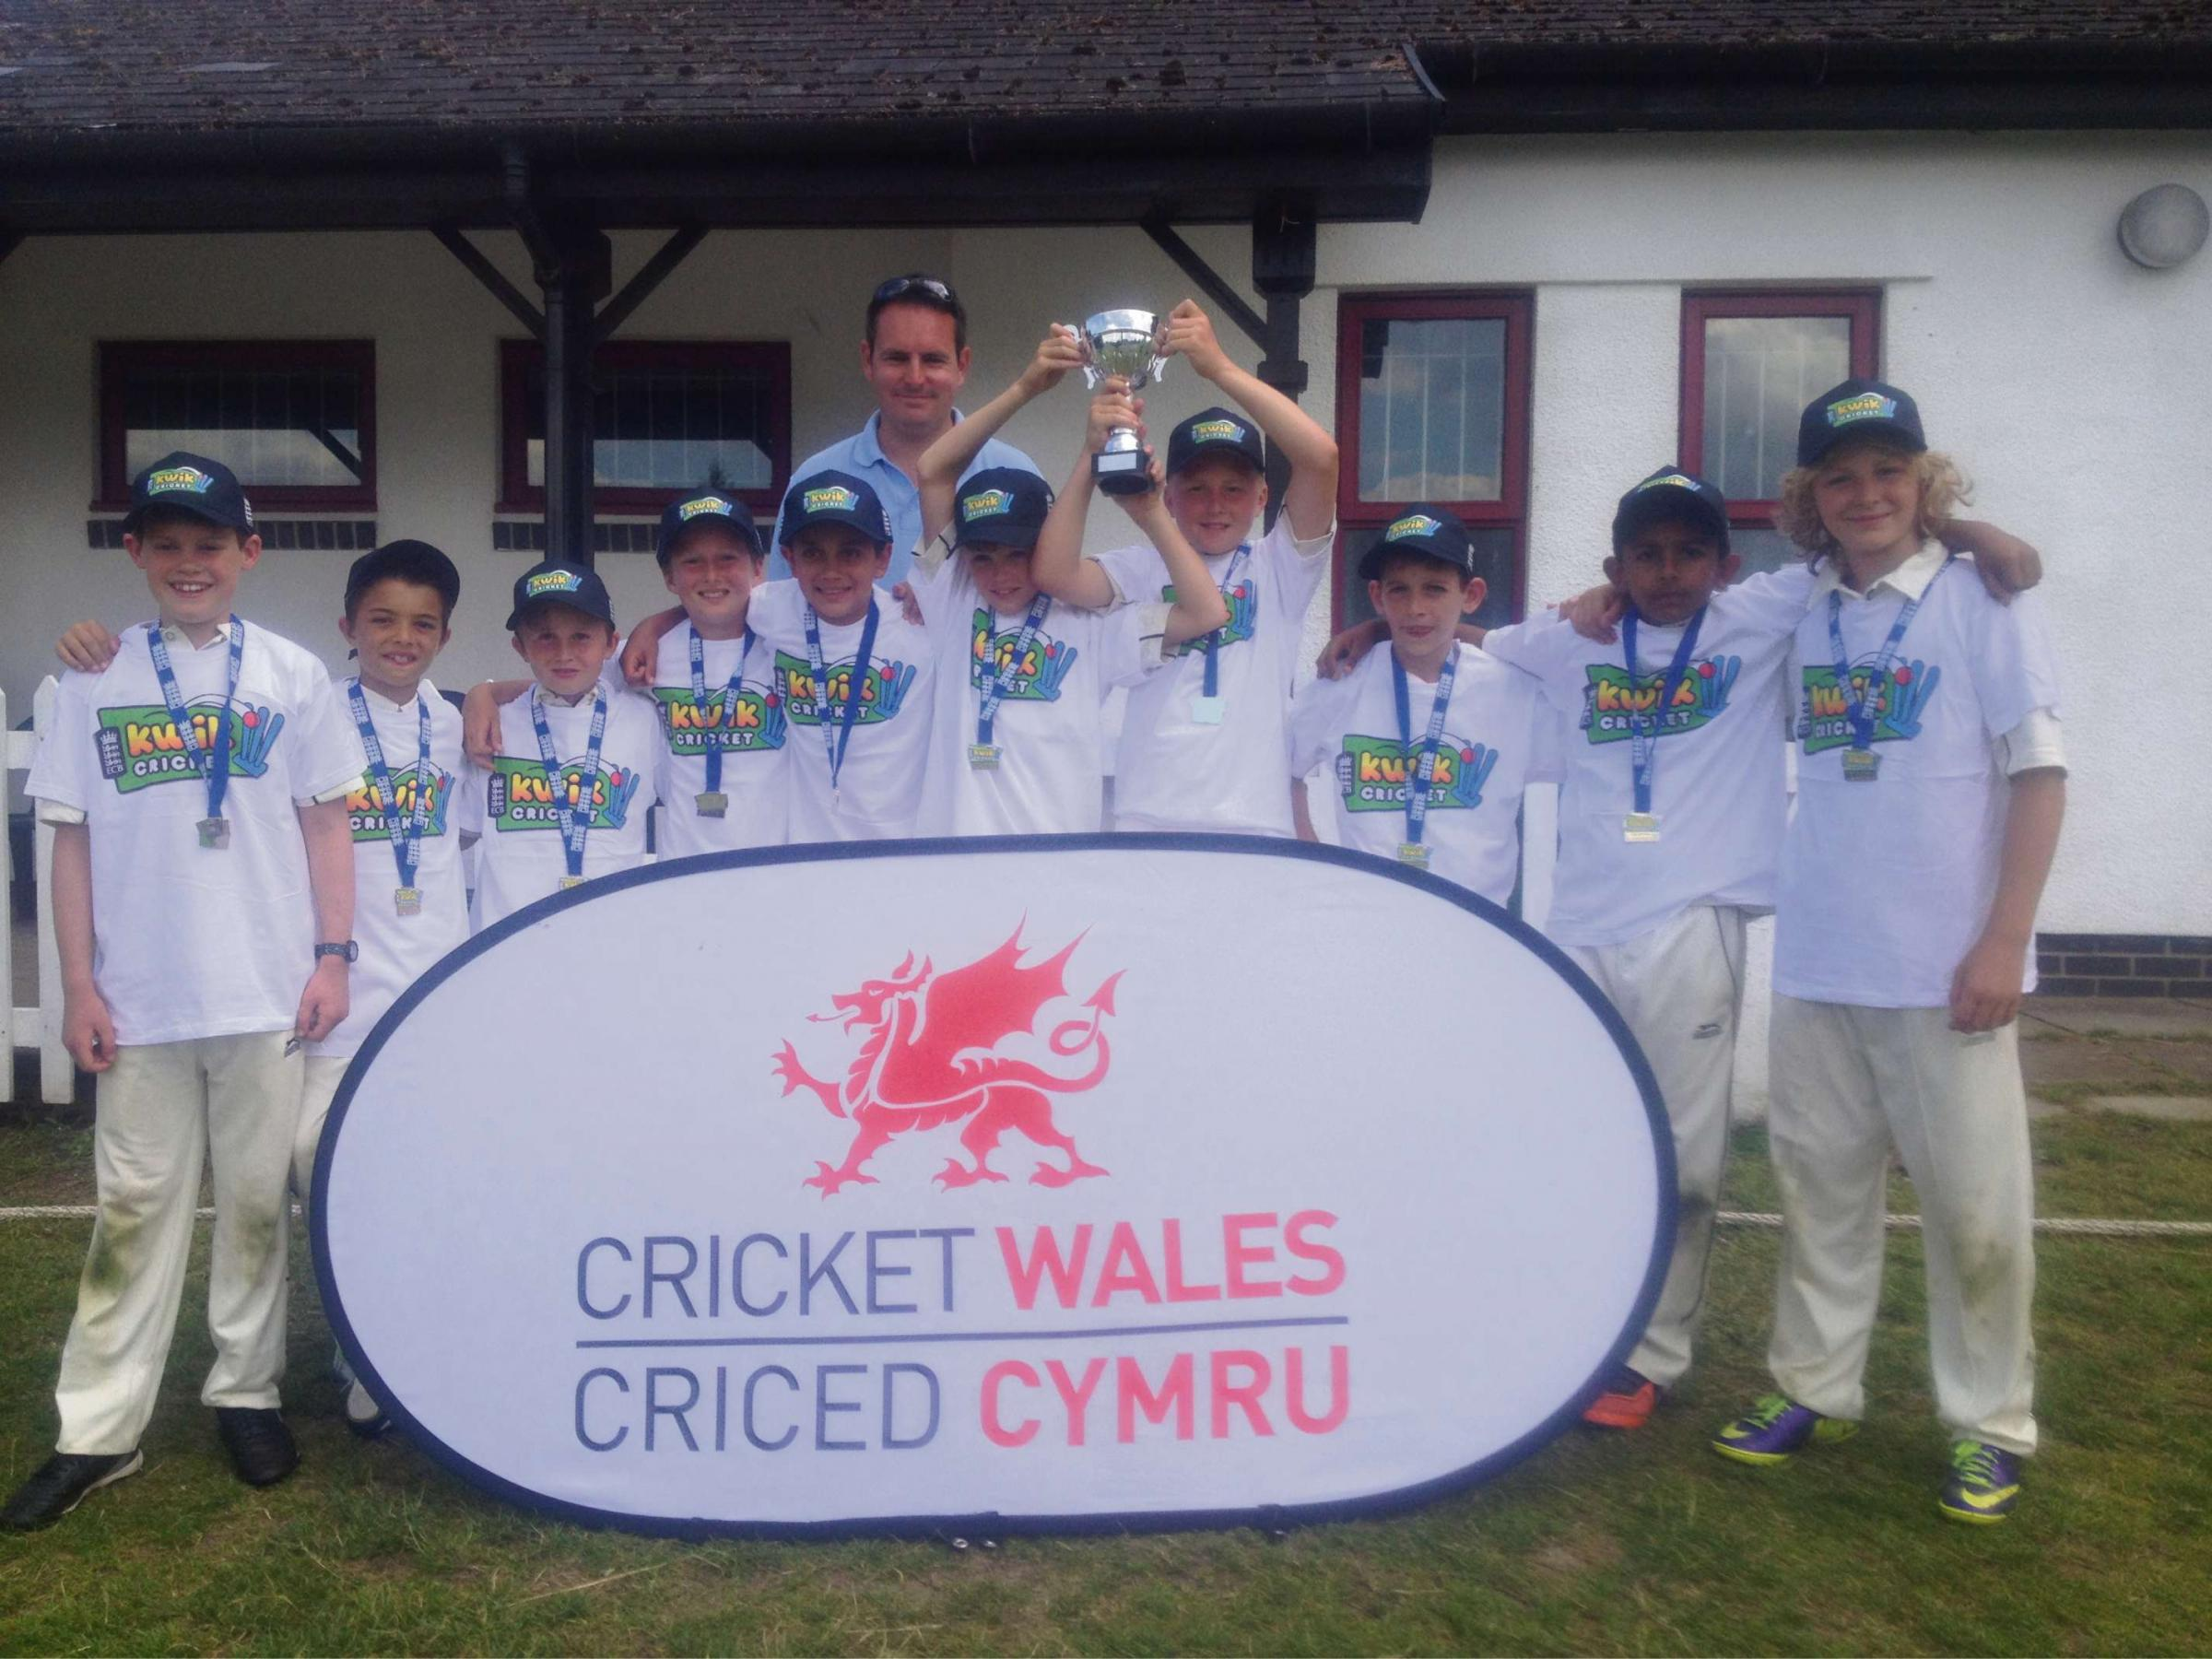 KWIK CRICKET WIN: Youngsters from Evenlode Primary School, Penarth, who won the mixed competition, were among more than 300 children taking part in the South Wales Kwik Cricket finals at St Fagan's Cricket Club.